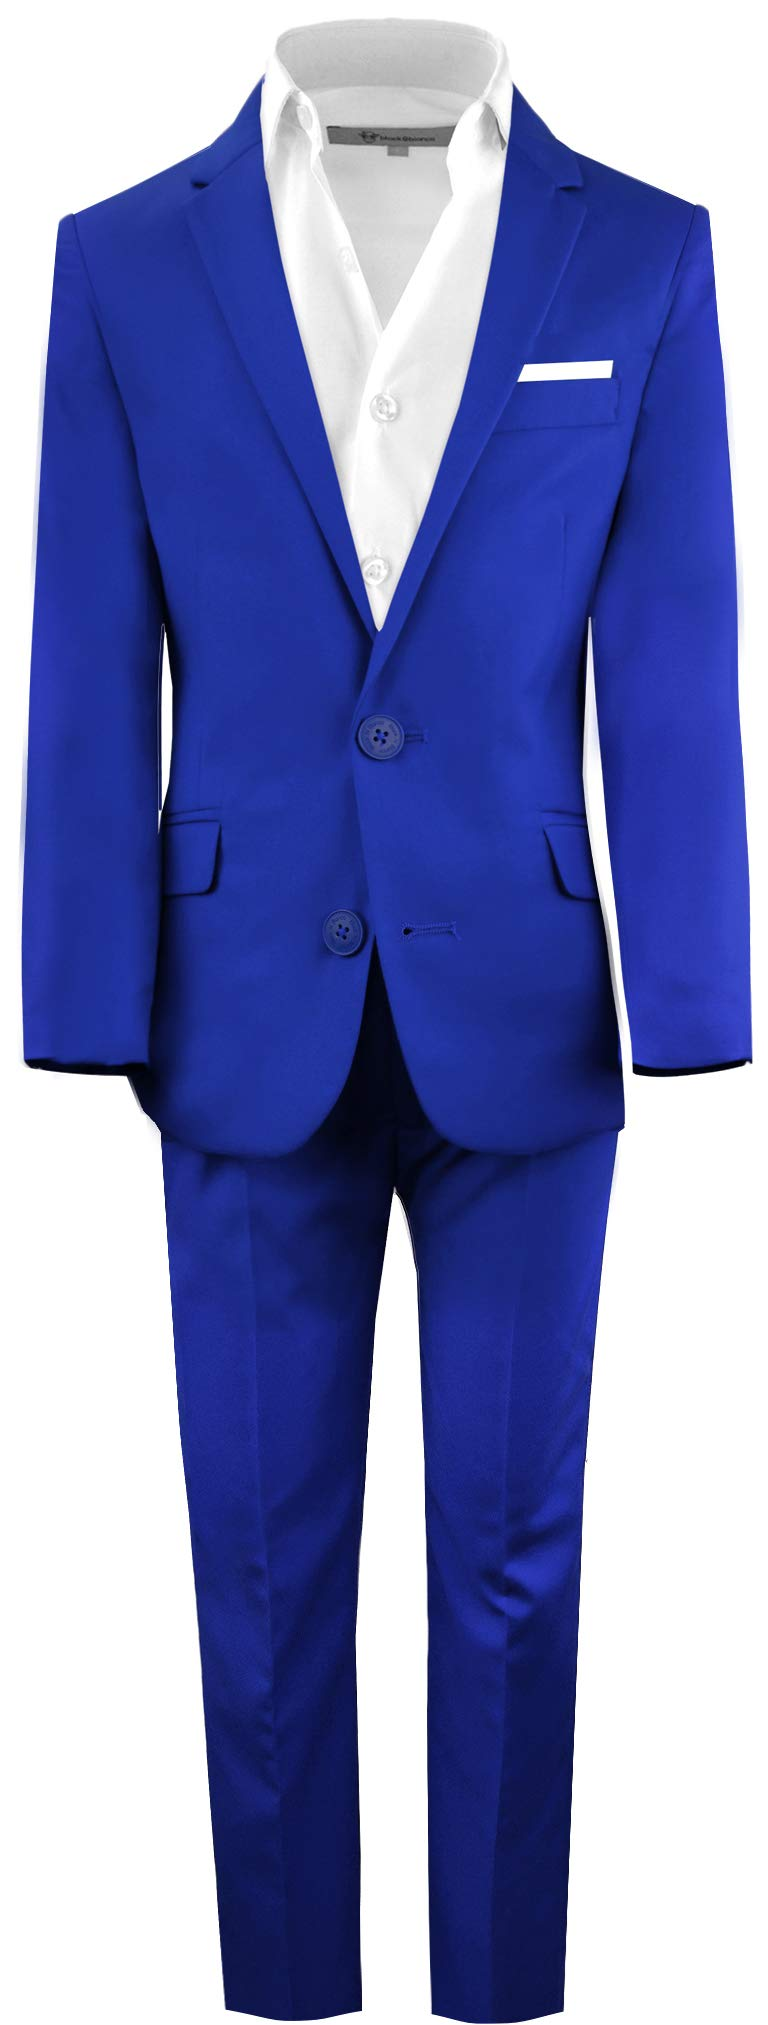 Black n Bianco Boys' First Class Slim Fit Suits Lightweight Style. Presented by Baby Muffin (16, Blue)